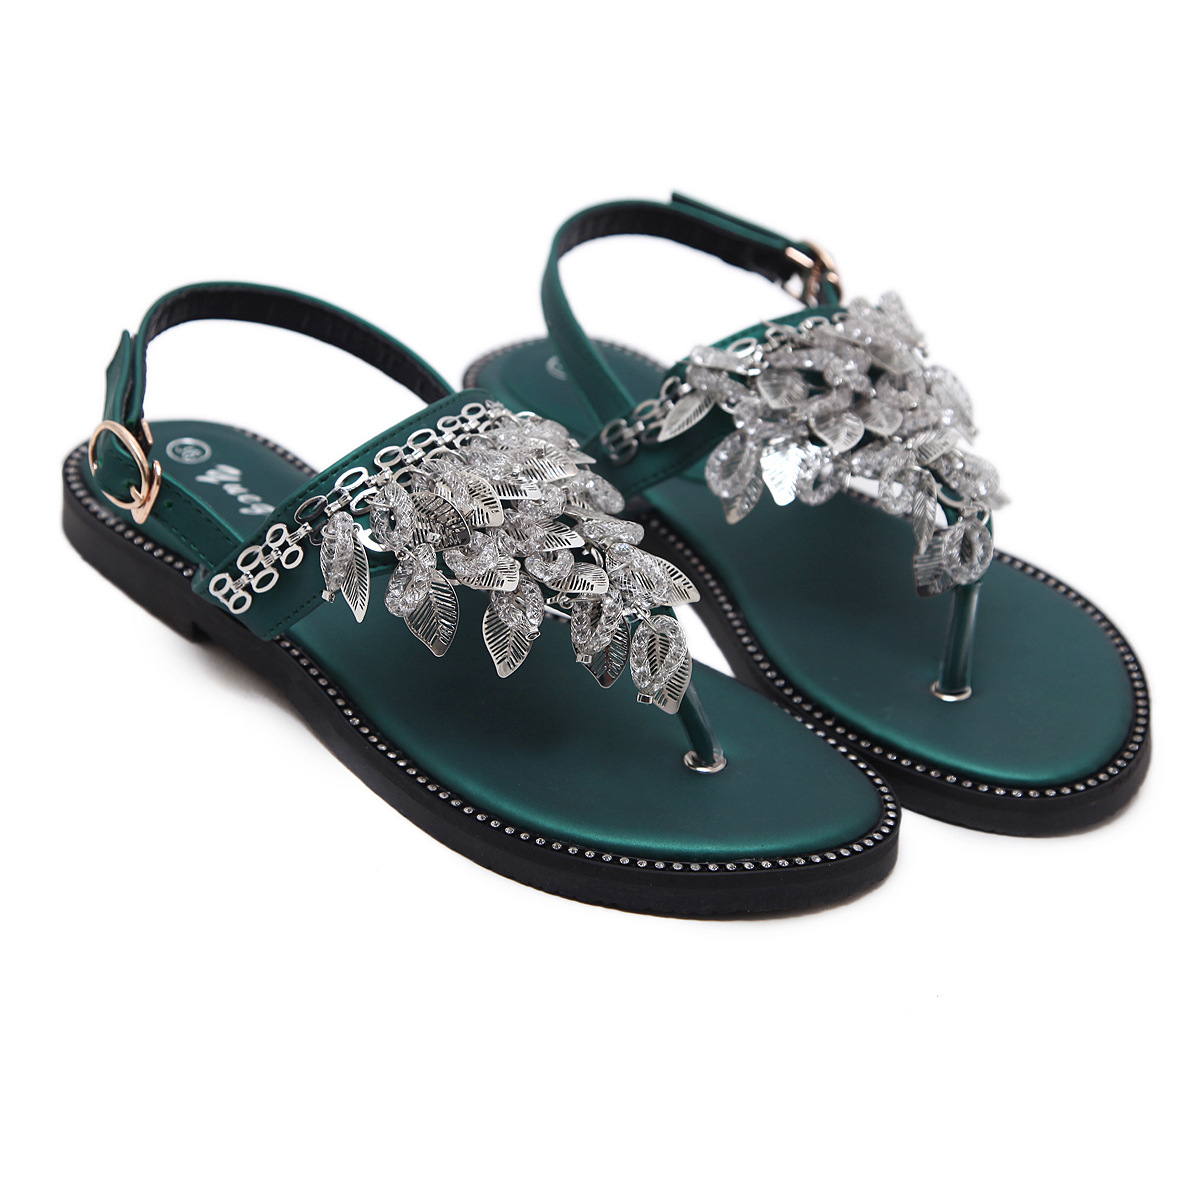 f8fb4d949d7fa Women Bohemian Ethnic Crystal Rhinestone Flat Sandals Roman Gladiator Flip  Flops Petal Flower Shoes Girl Wedding